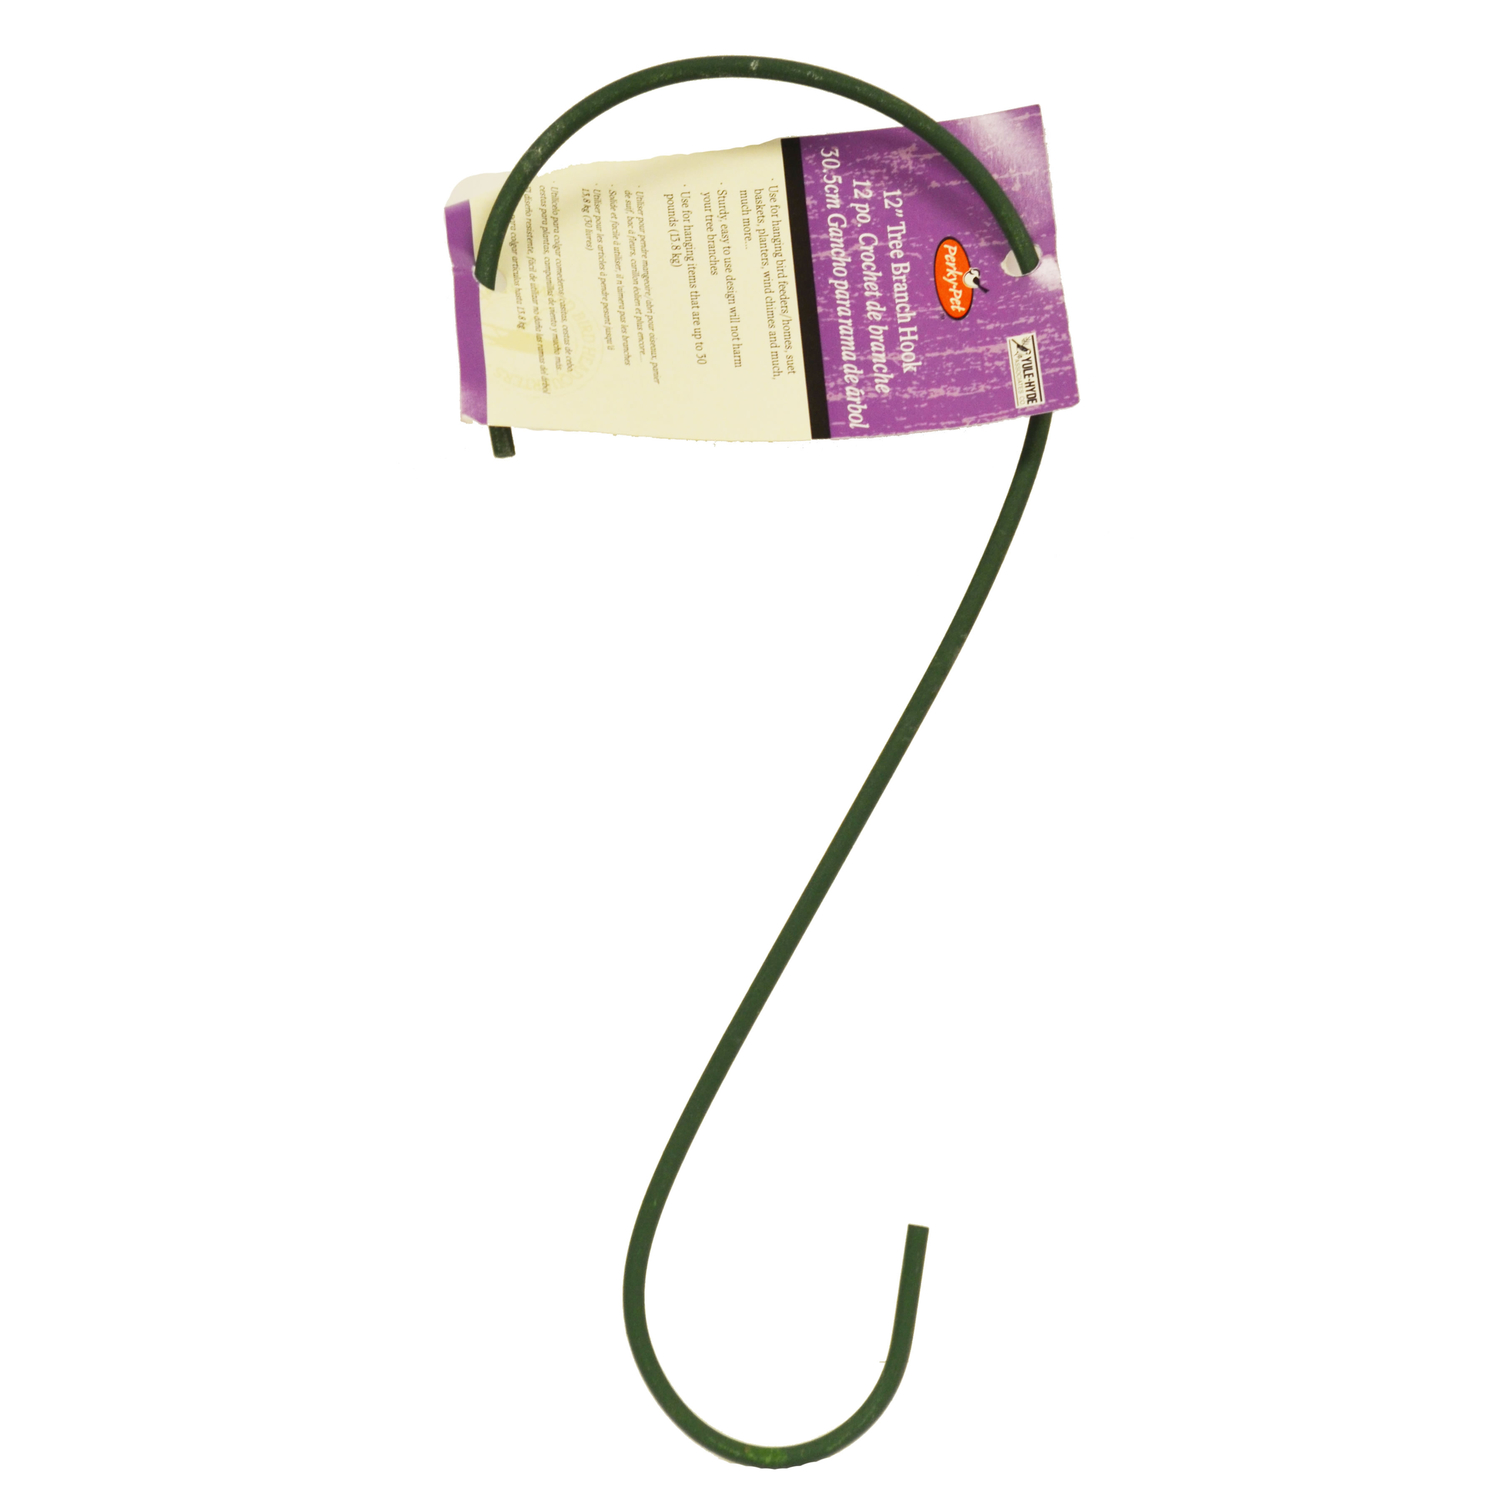 Perky-Pet  12.38 in. H x 0.2 in. D x 4.88 in. W Bird Feeder Hook